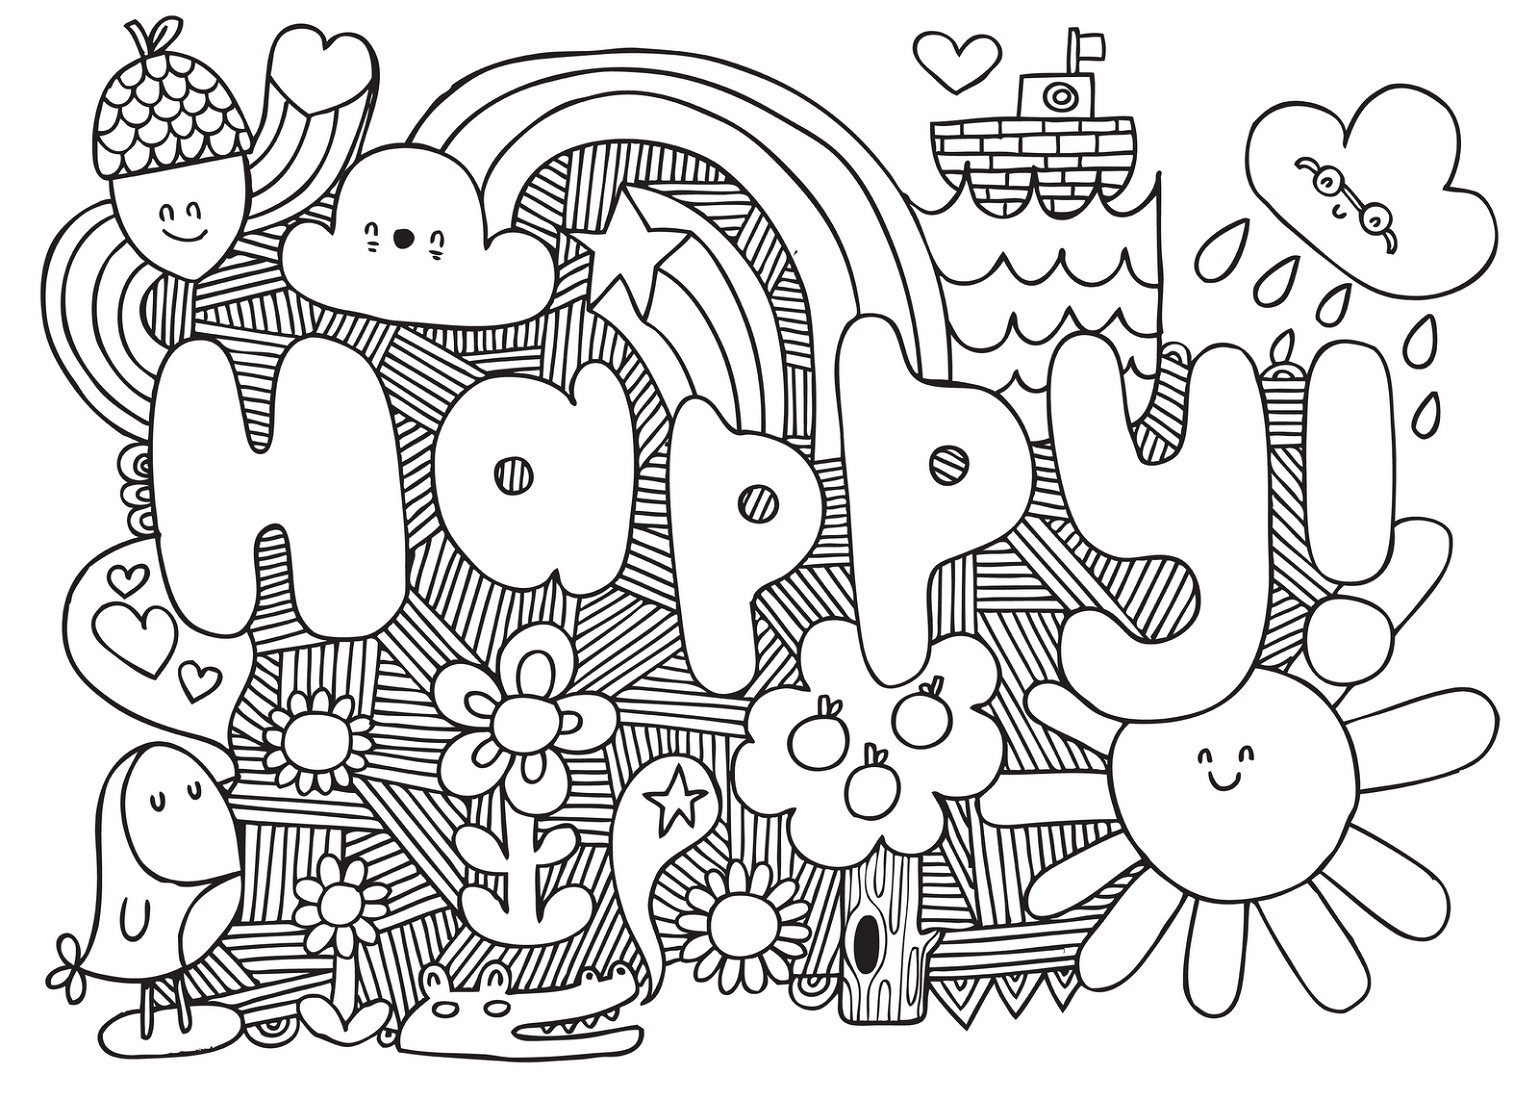 Free Coloring Pages for Teens | 101 Coloring